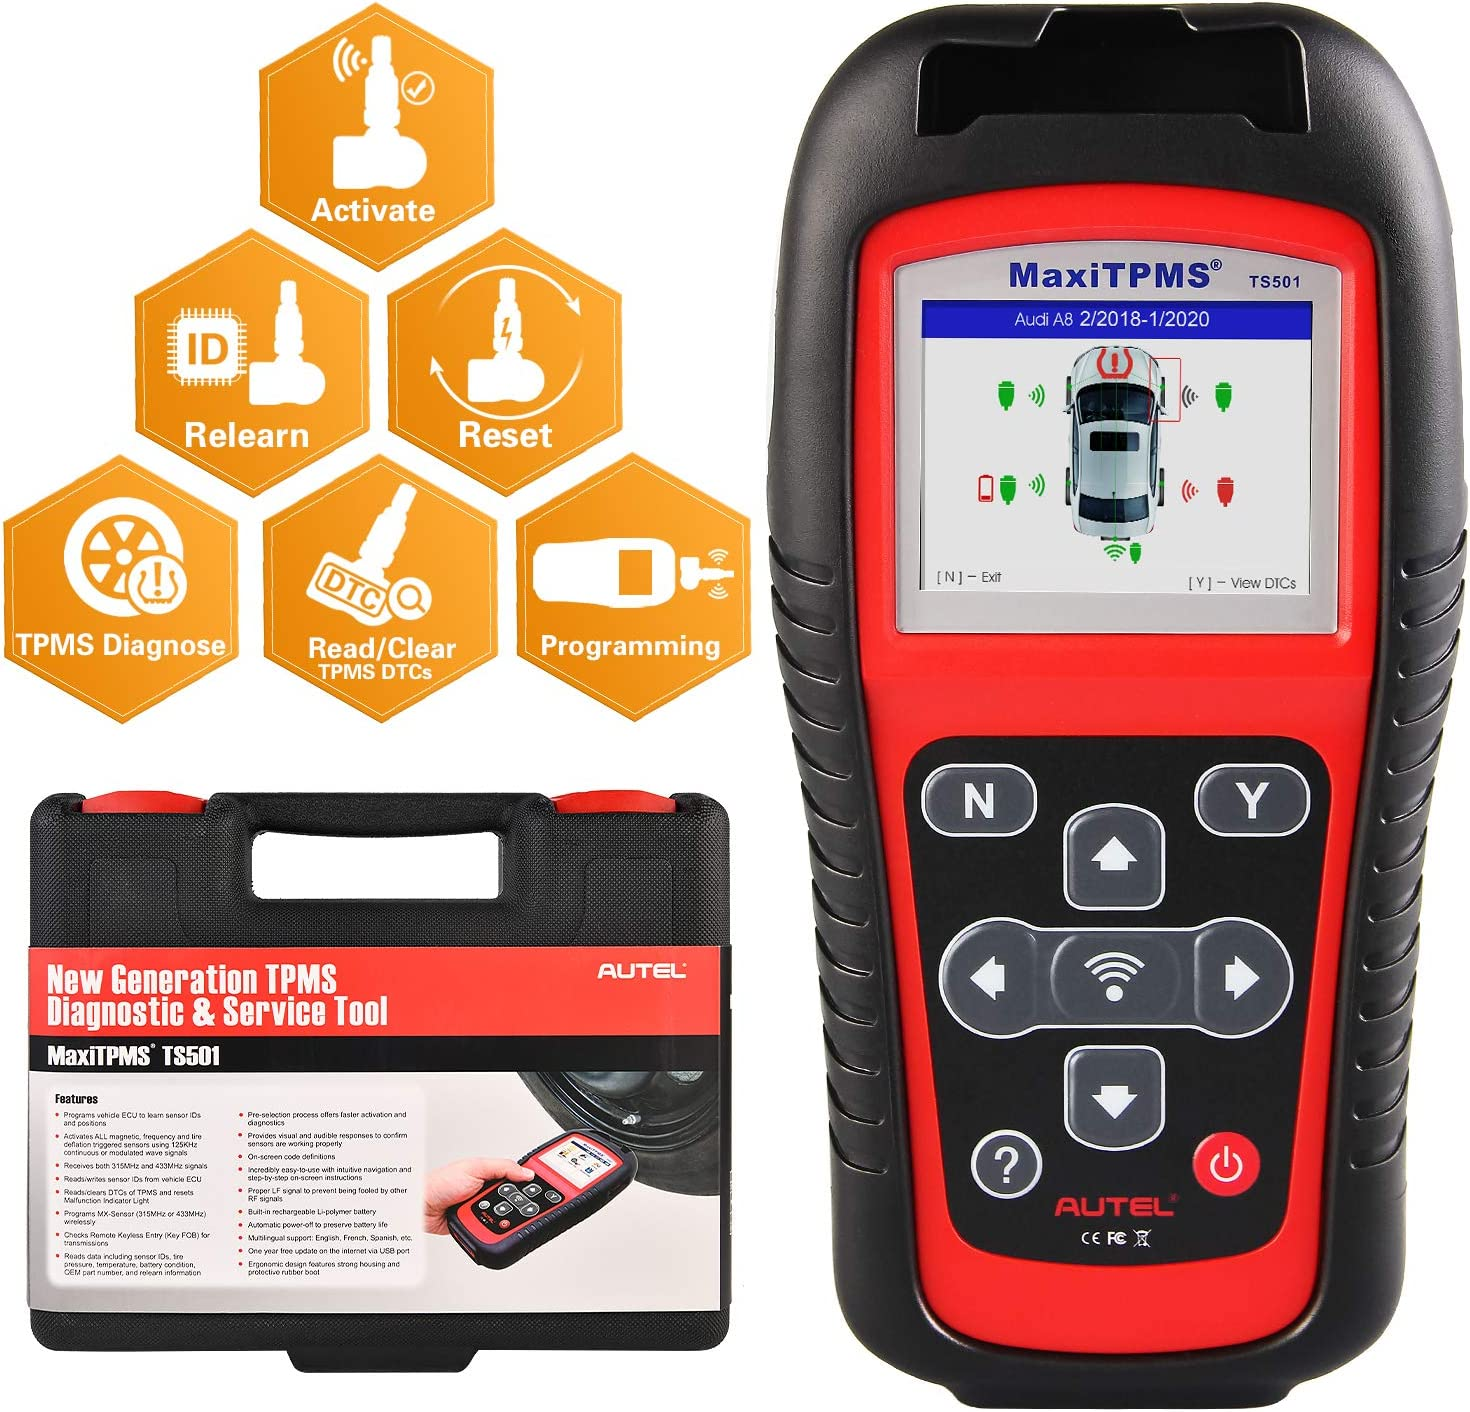 Autel MaxiTPMS TS501 TPMS Scan Tool, Upgraded Version of TS408 TS401, Program MX-Sensor, TPMS Diagnose, Read Clear TPMS DTCs, Sensor Activation, Key Fob Testing, Relearn by OBD Function